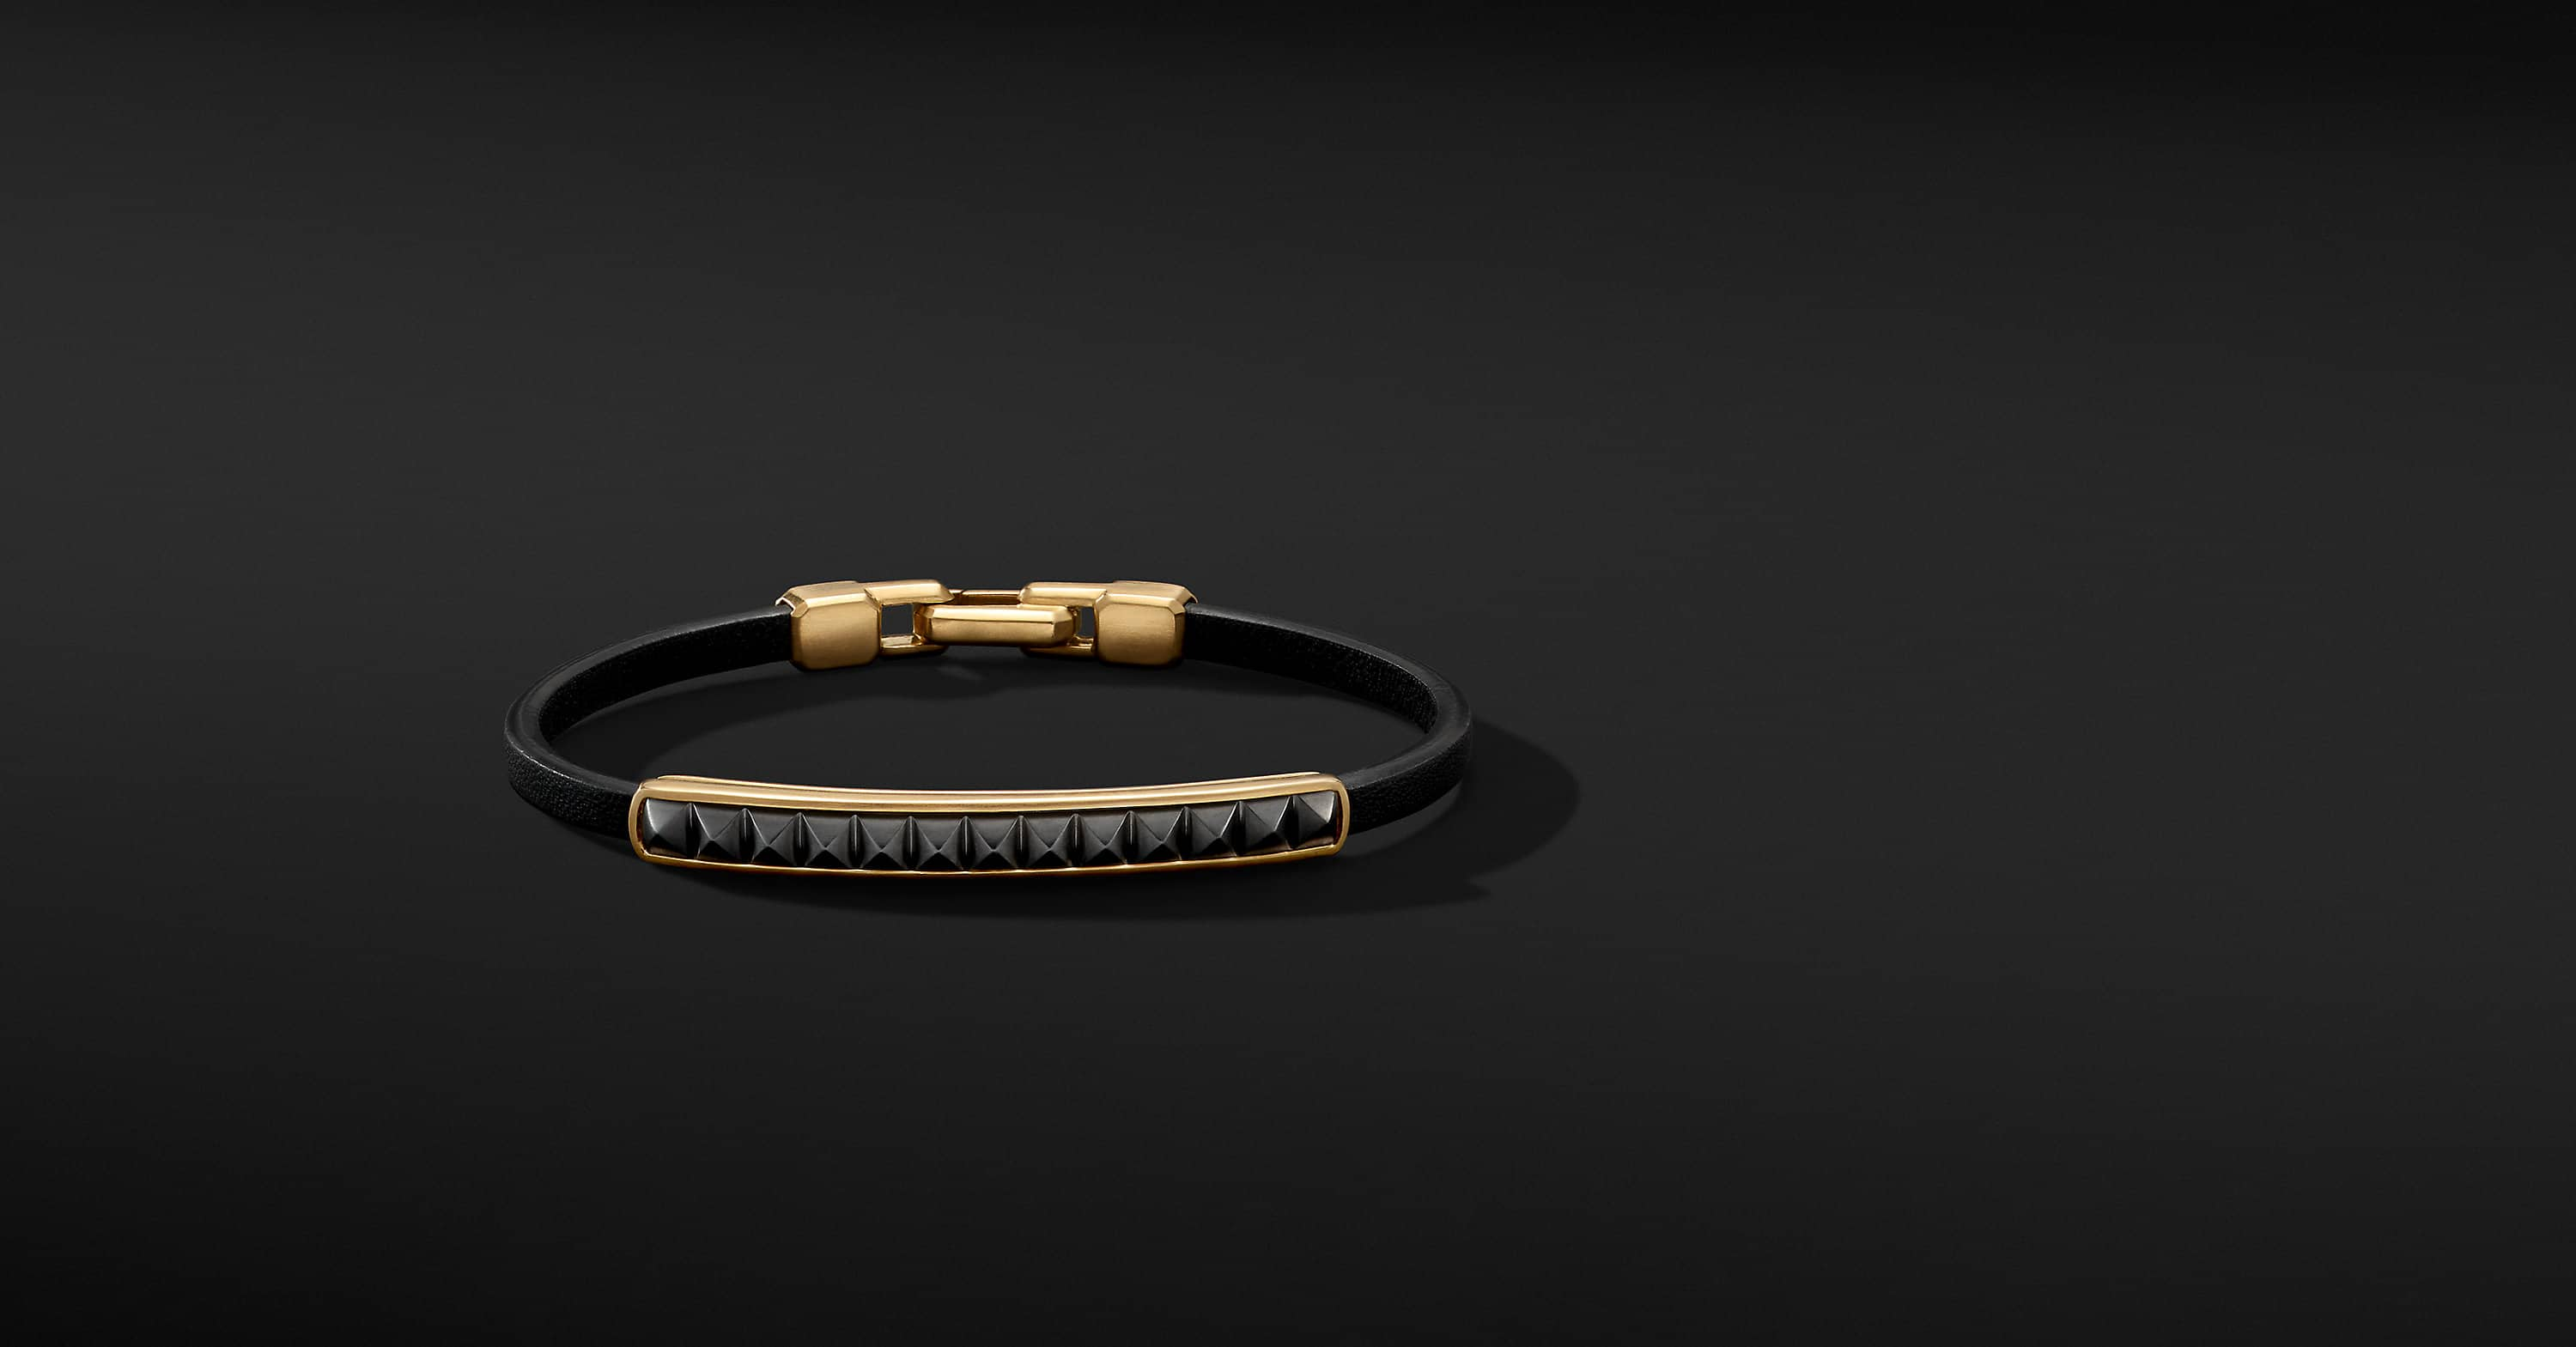 Pyramid Leather ID Bracelet with 18K Yellow Gold and Black Titanium